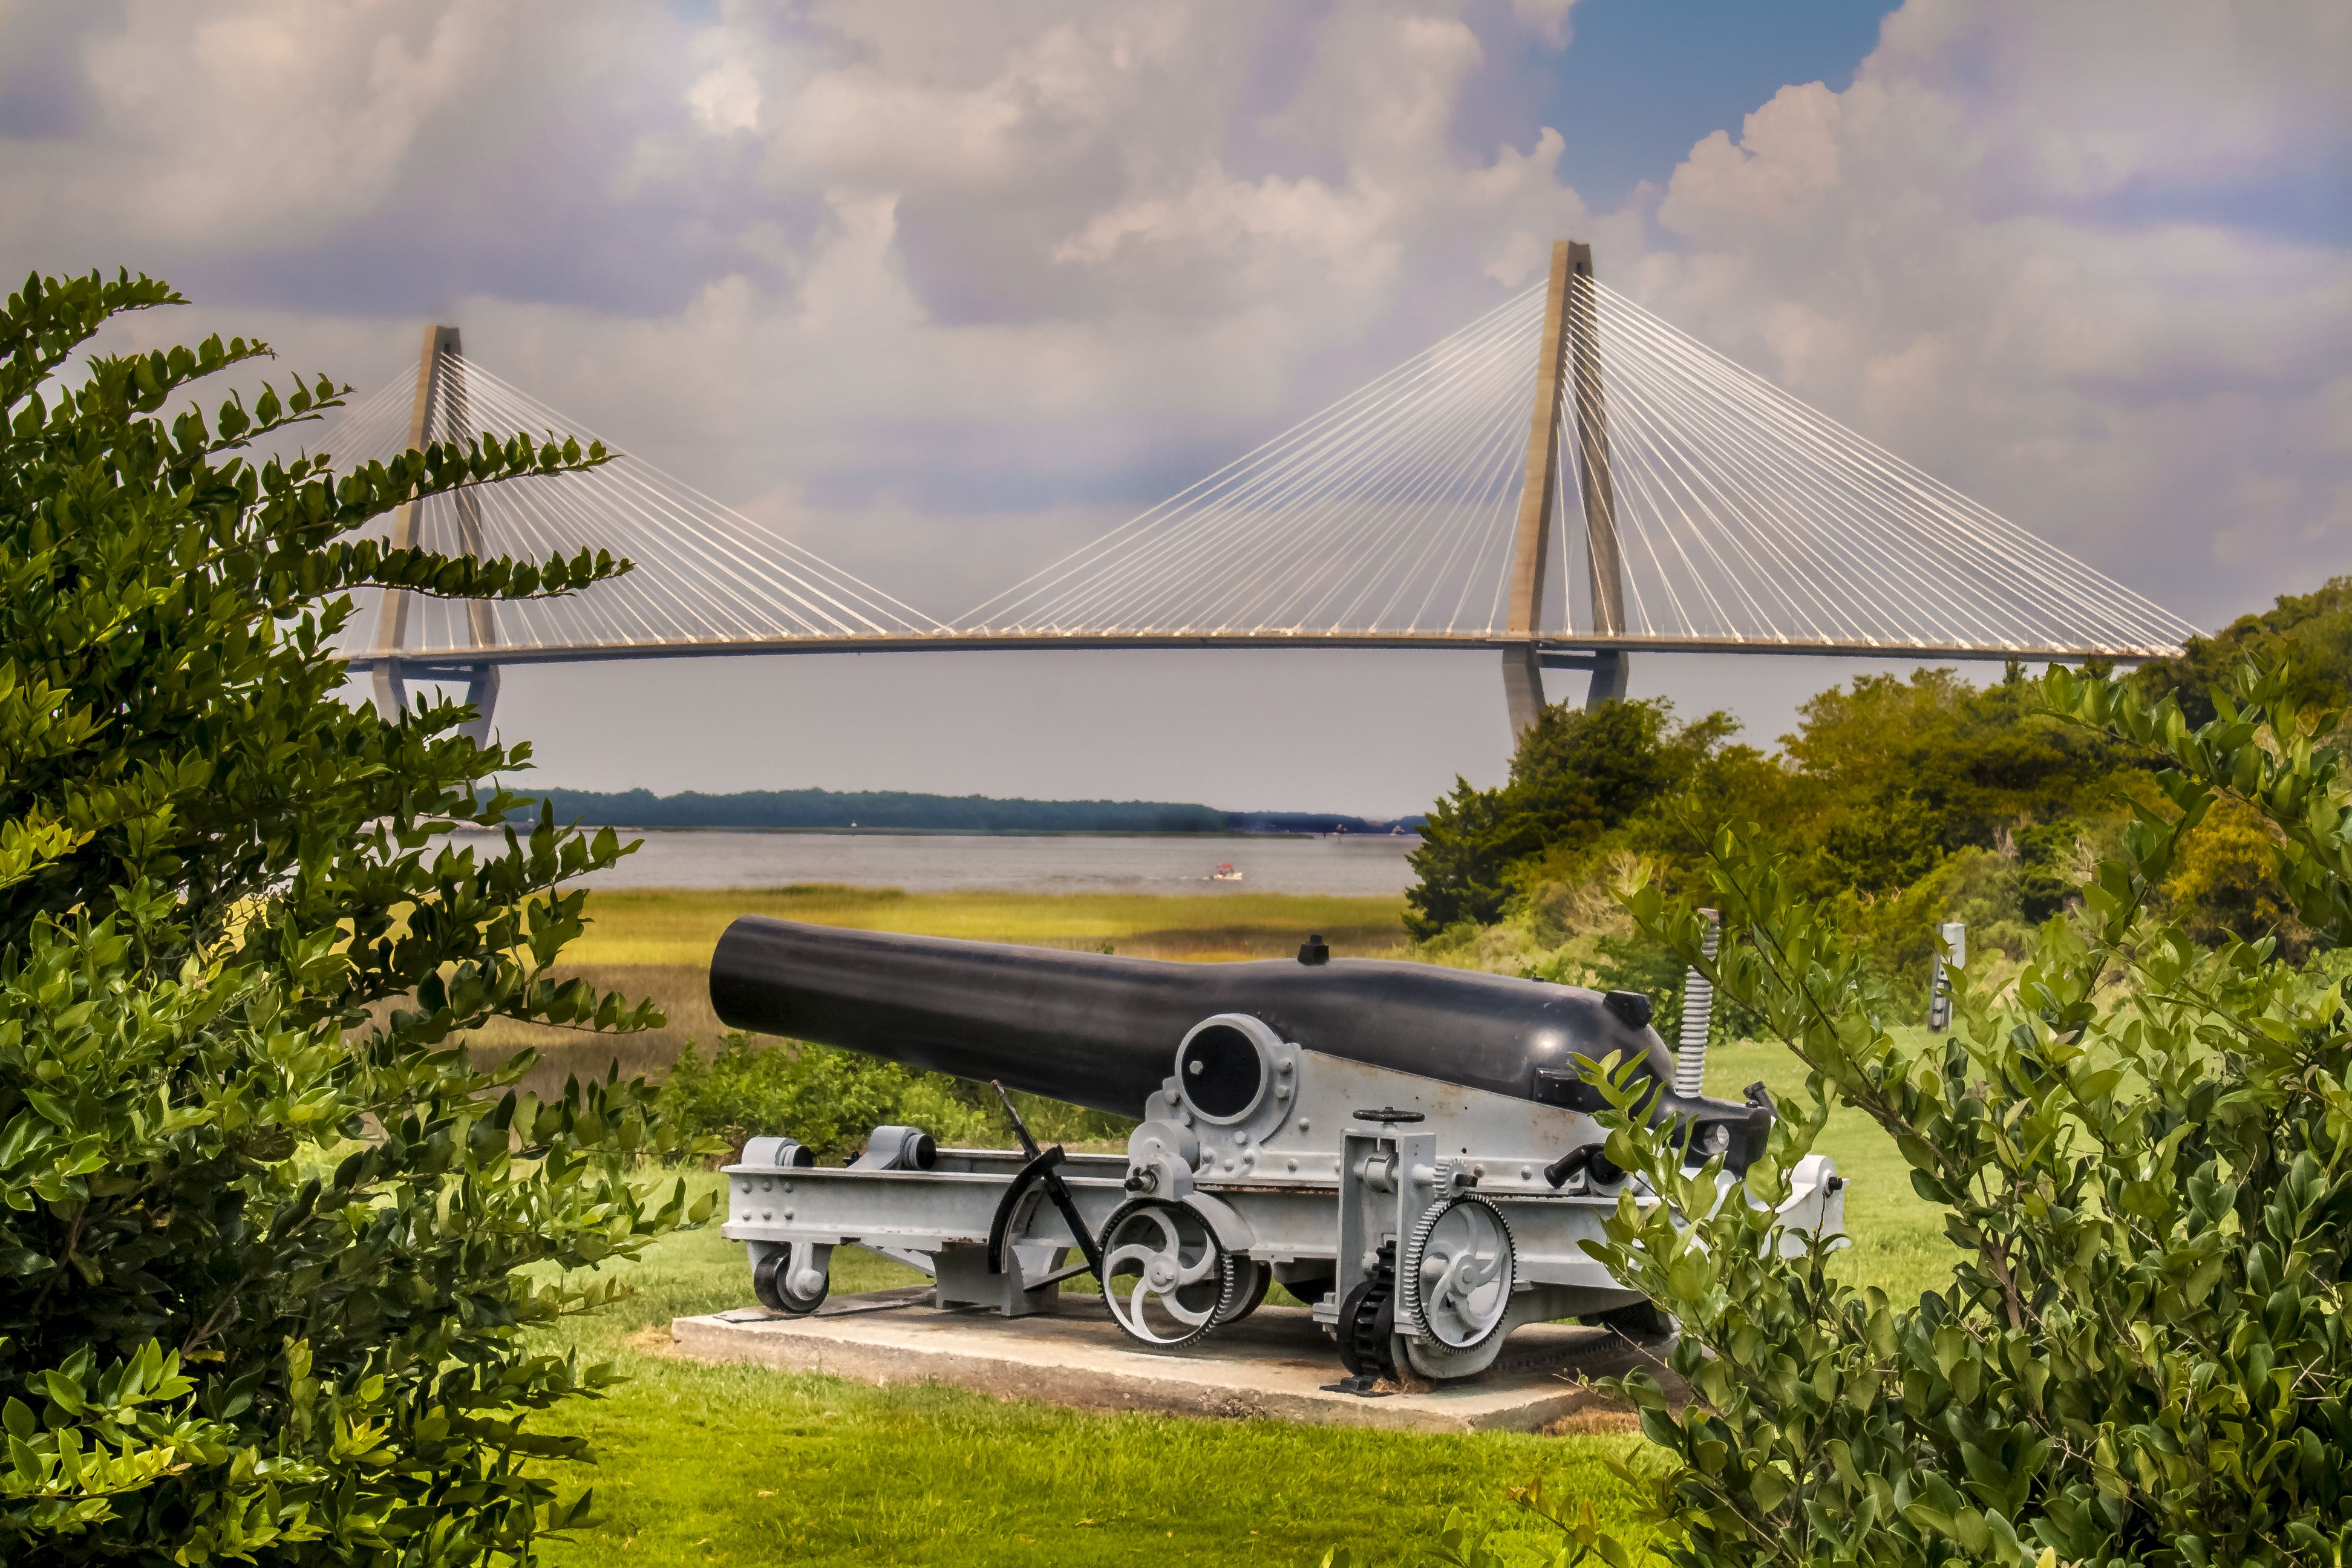 #LOVE My Facebook page: https://www.facebook.com/MrOgdenGeorge/  #GeorgeOgden The Arthur Ravenel Jr. Bridge, also known as the New Cooper River Bridge, is a cable-stayed bridge over the Cooper River in South Carolina, connecting downtown Charleston to Mount Pleasant.